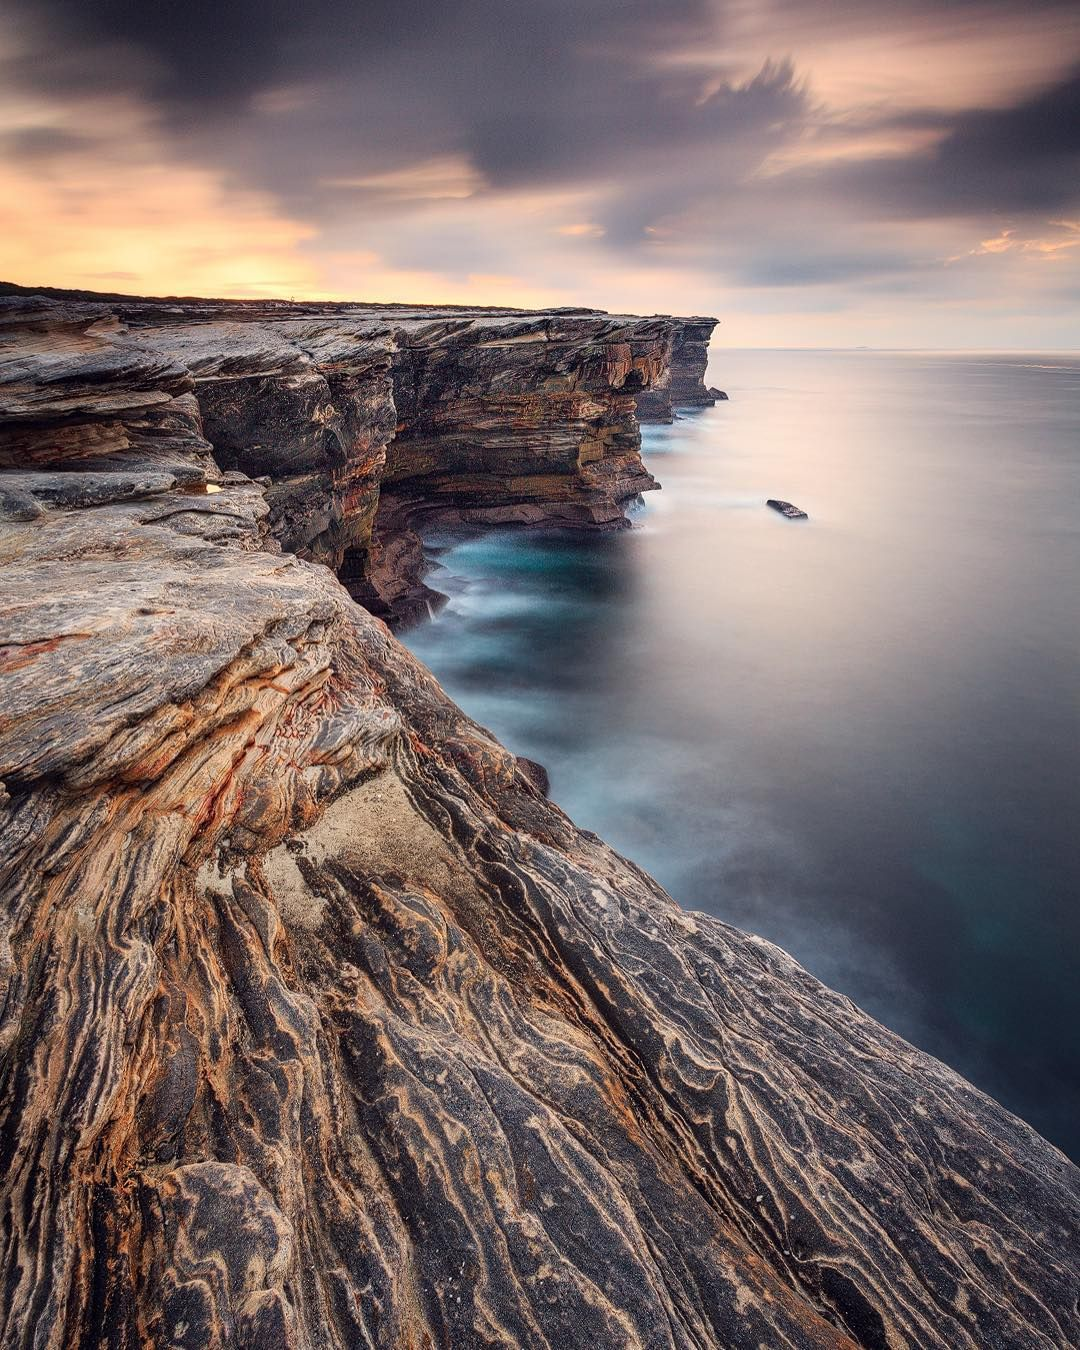 """""""The rugged sandstone cliffs of Potter Point, Sutherland Shire, Sydney. This is one of my favourite spots in Sydney. The cliffs are so majestic and the…"""""""